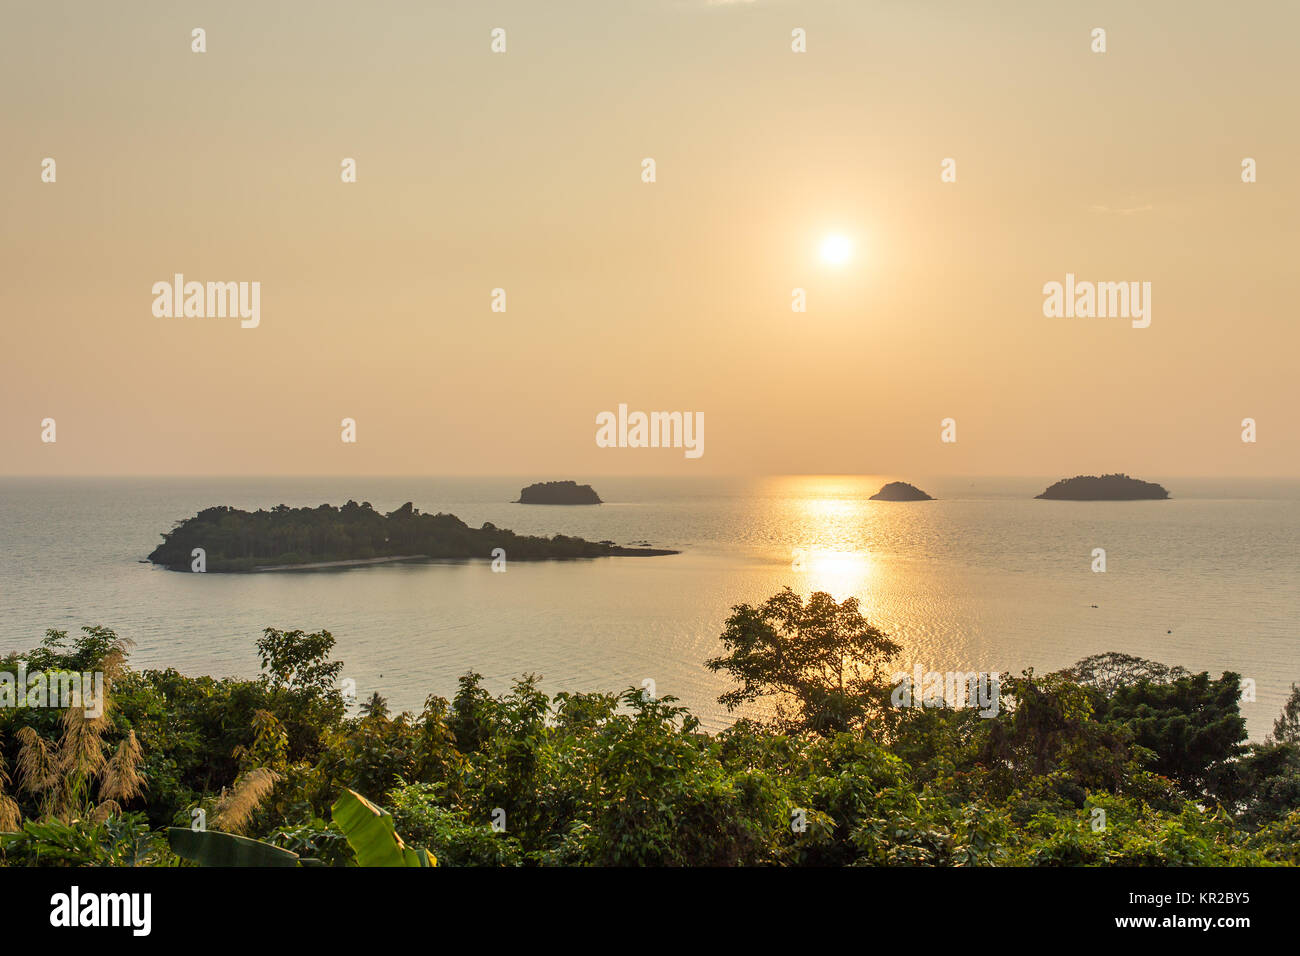 Beautiful tropical island landscape. View from Koh Chang to Koh Man Nai during sunset - Stock Image